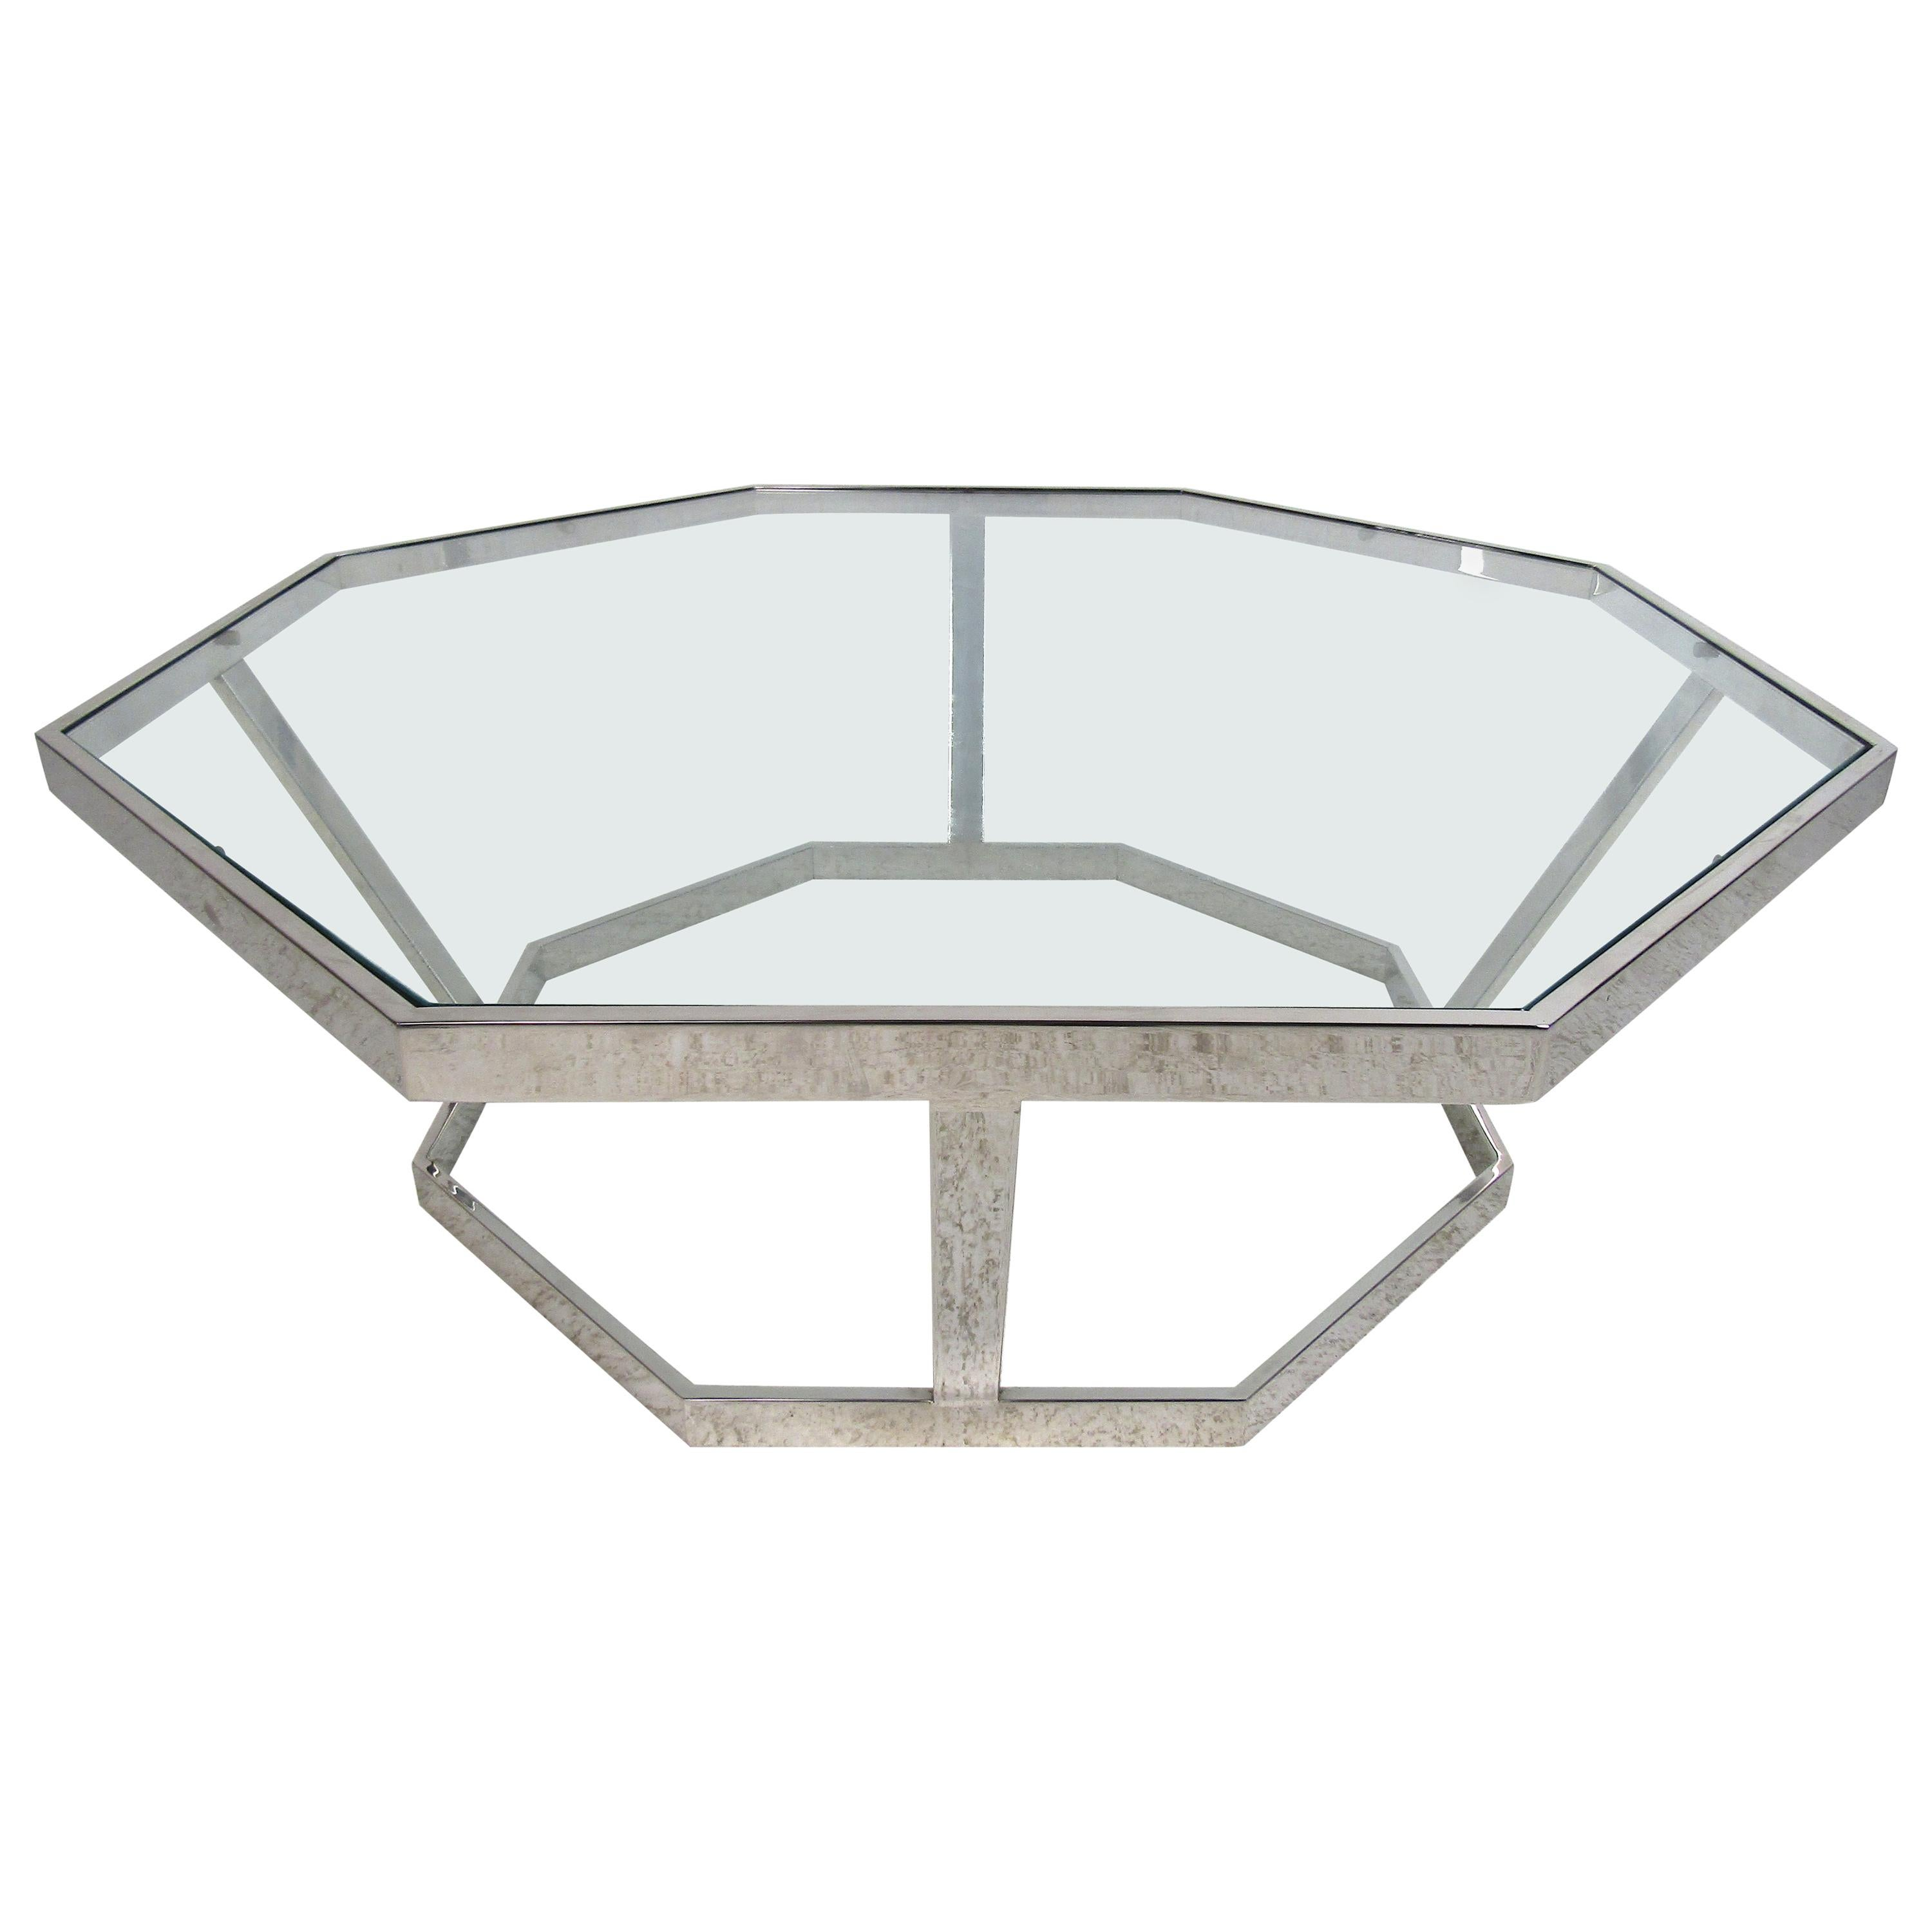 Mid-Century Modern Octagonal Chrome and Glass Coffee Table